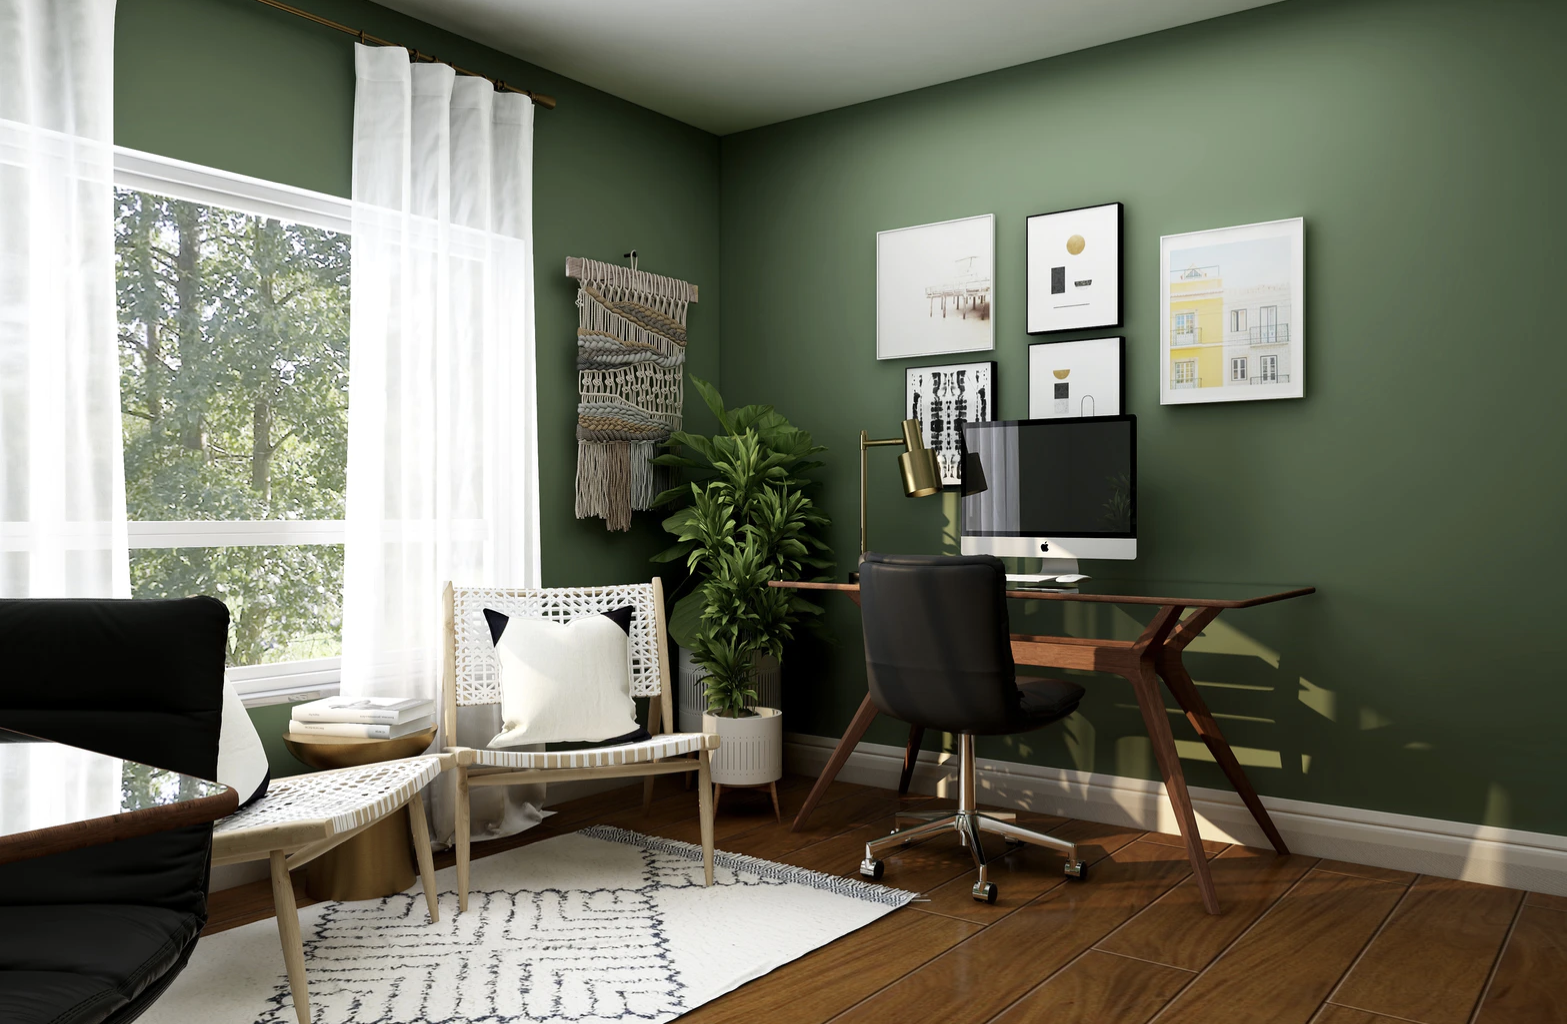 Top Appliances To Get For Your Ideal Home Office Setup - Alvinology